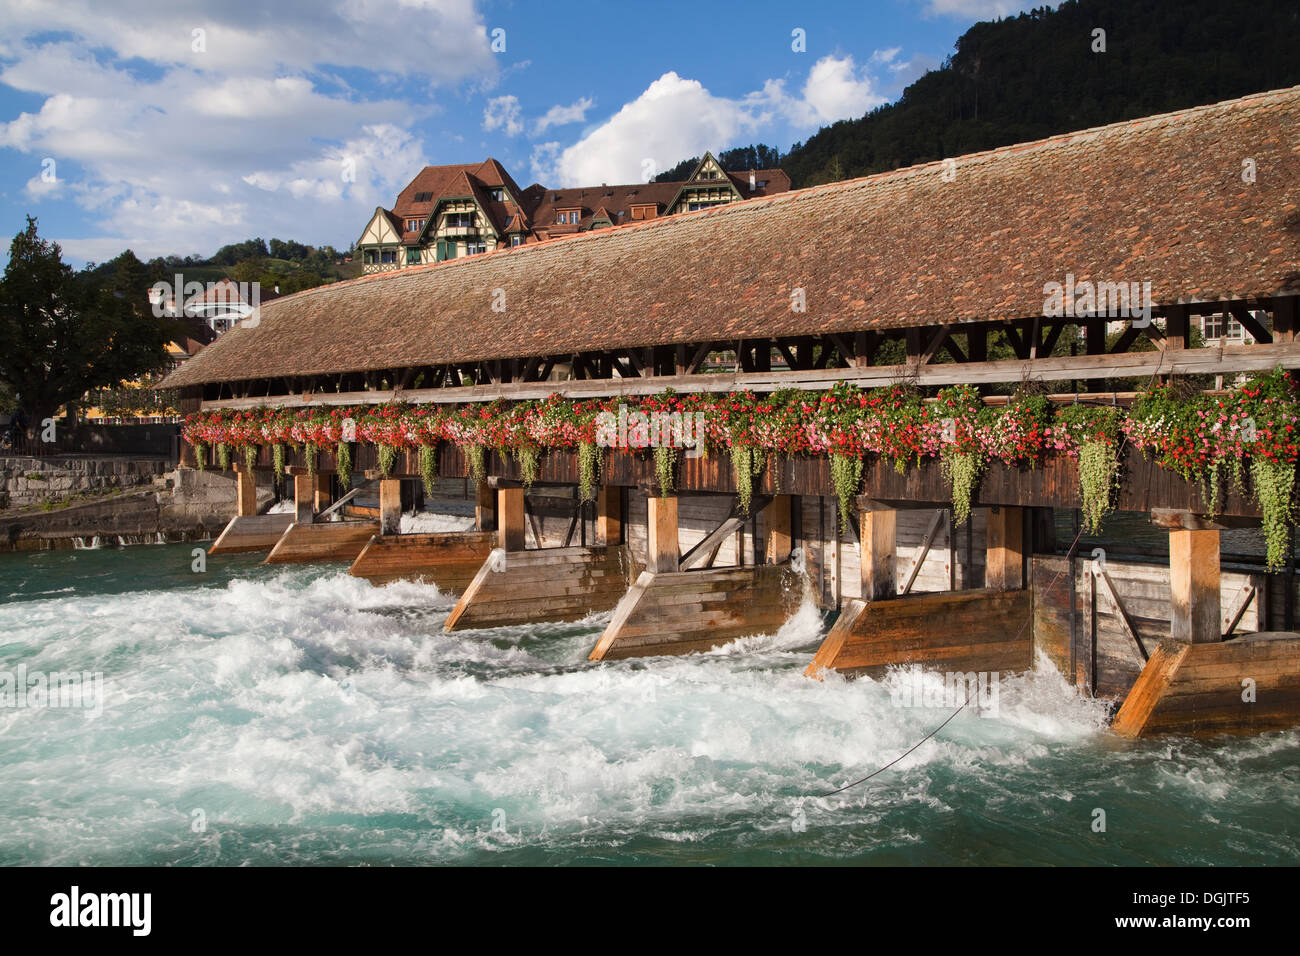 Upper Sluice between Lake Thun and river Aare in Thun, Switzerland. - Stock Image